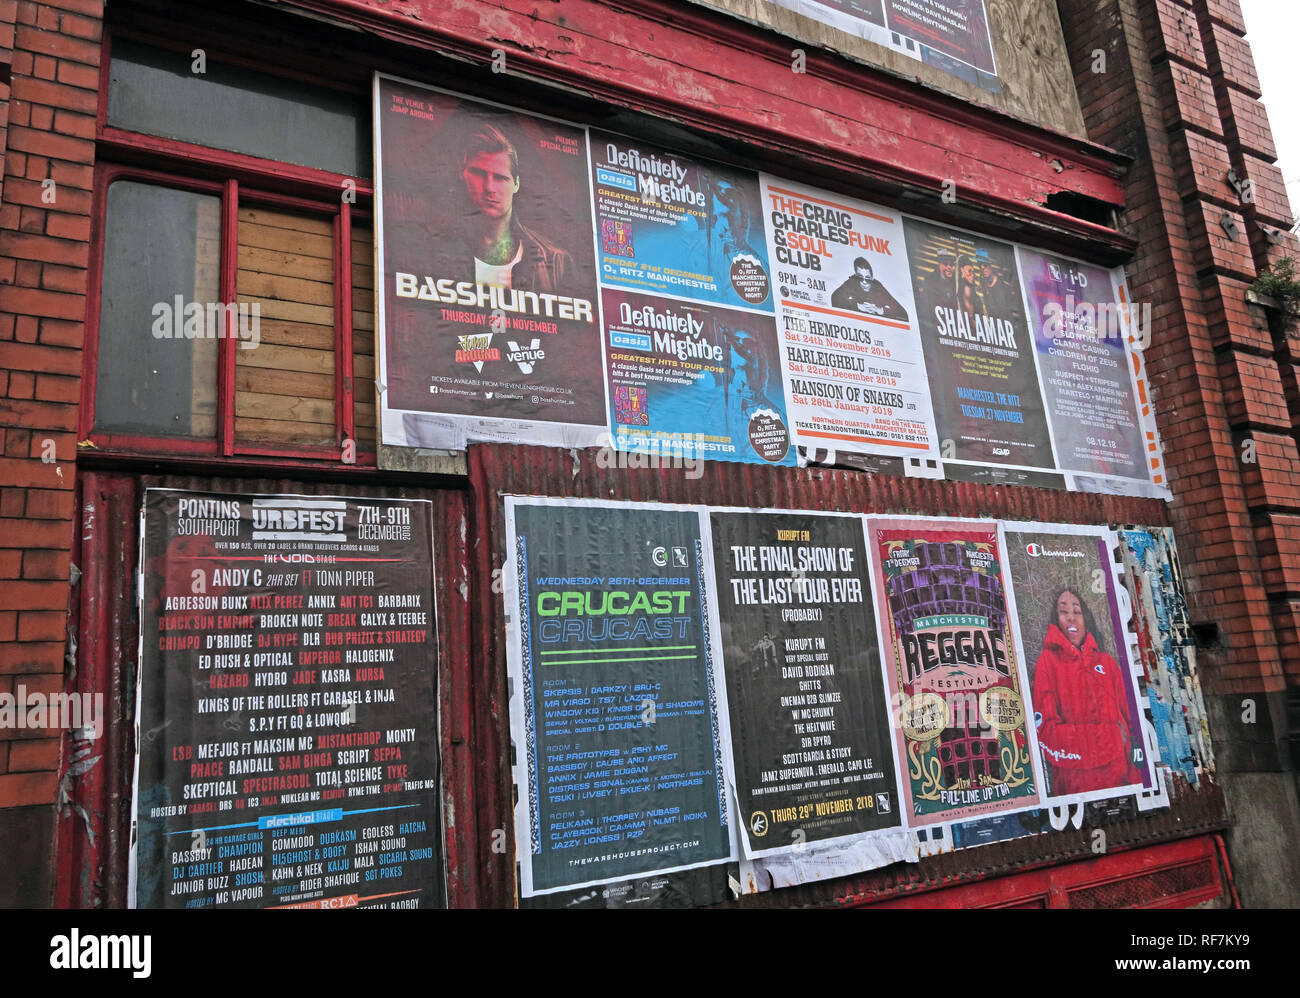 Manchester City Centre,Manchester,City Centre,city,NQ,NQ4,Northern Quarter,North West,England,UK,GoTonySmith,HotpixUK,@HotpixUK,buildings,streets,Railway,sign,Fairfield St,Mayfield,history,brick,station,scheme,proposed,development,schemes,poster,posters,property,London and Continental Railways,London & Continental Railways,LNWR,London Midland,Goods Station,disused,Square One development,Square One,Prime Suspect drug dealers haunt